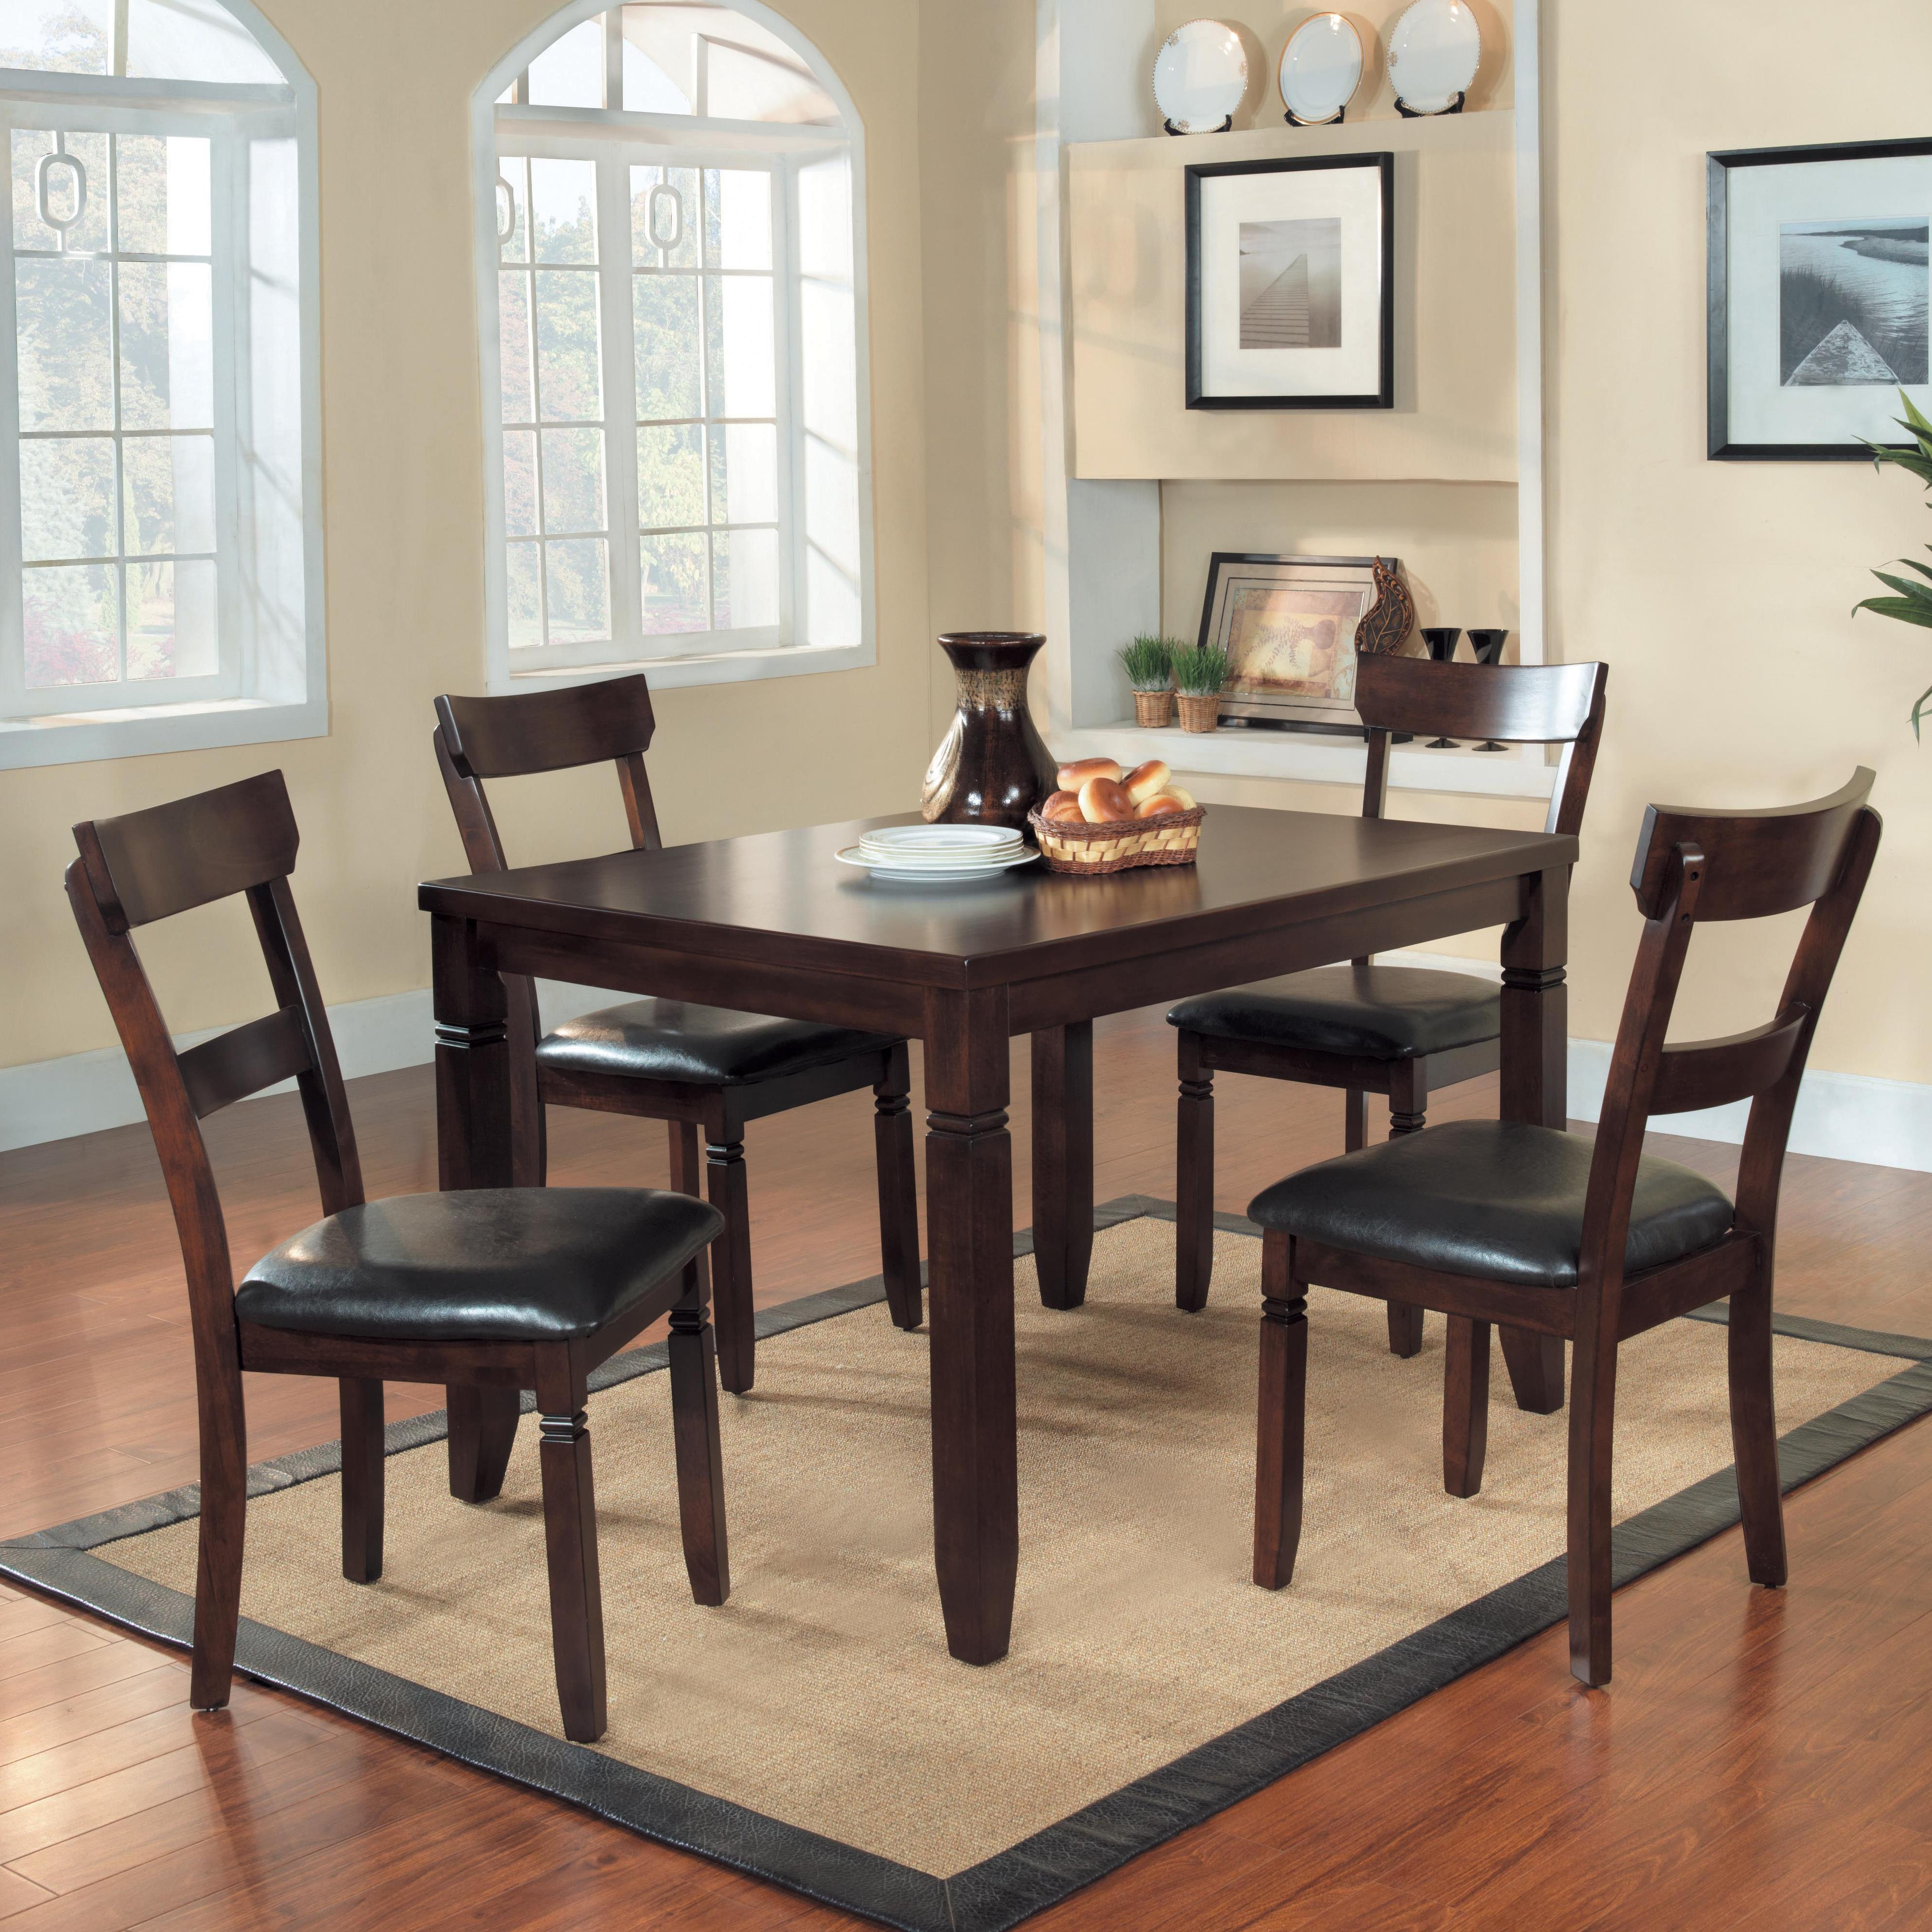 table chair dinette set value city furniture dining 5 piece set